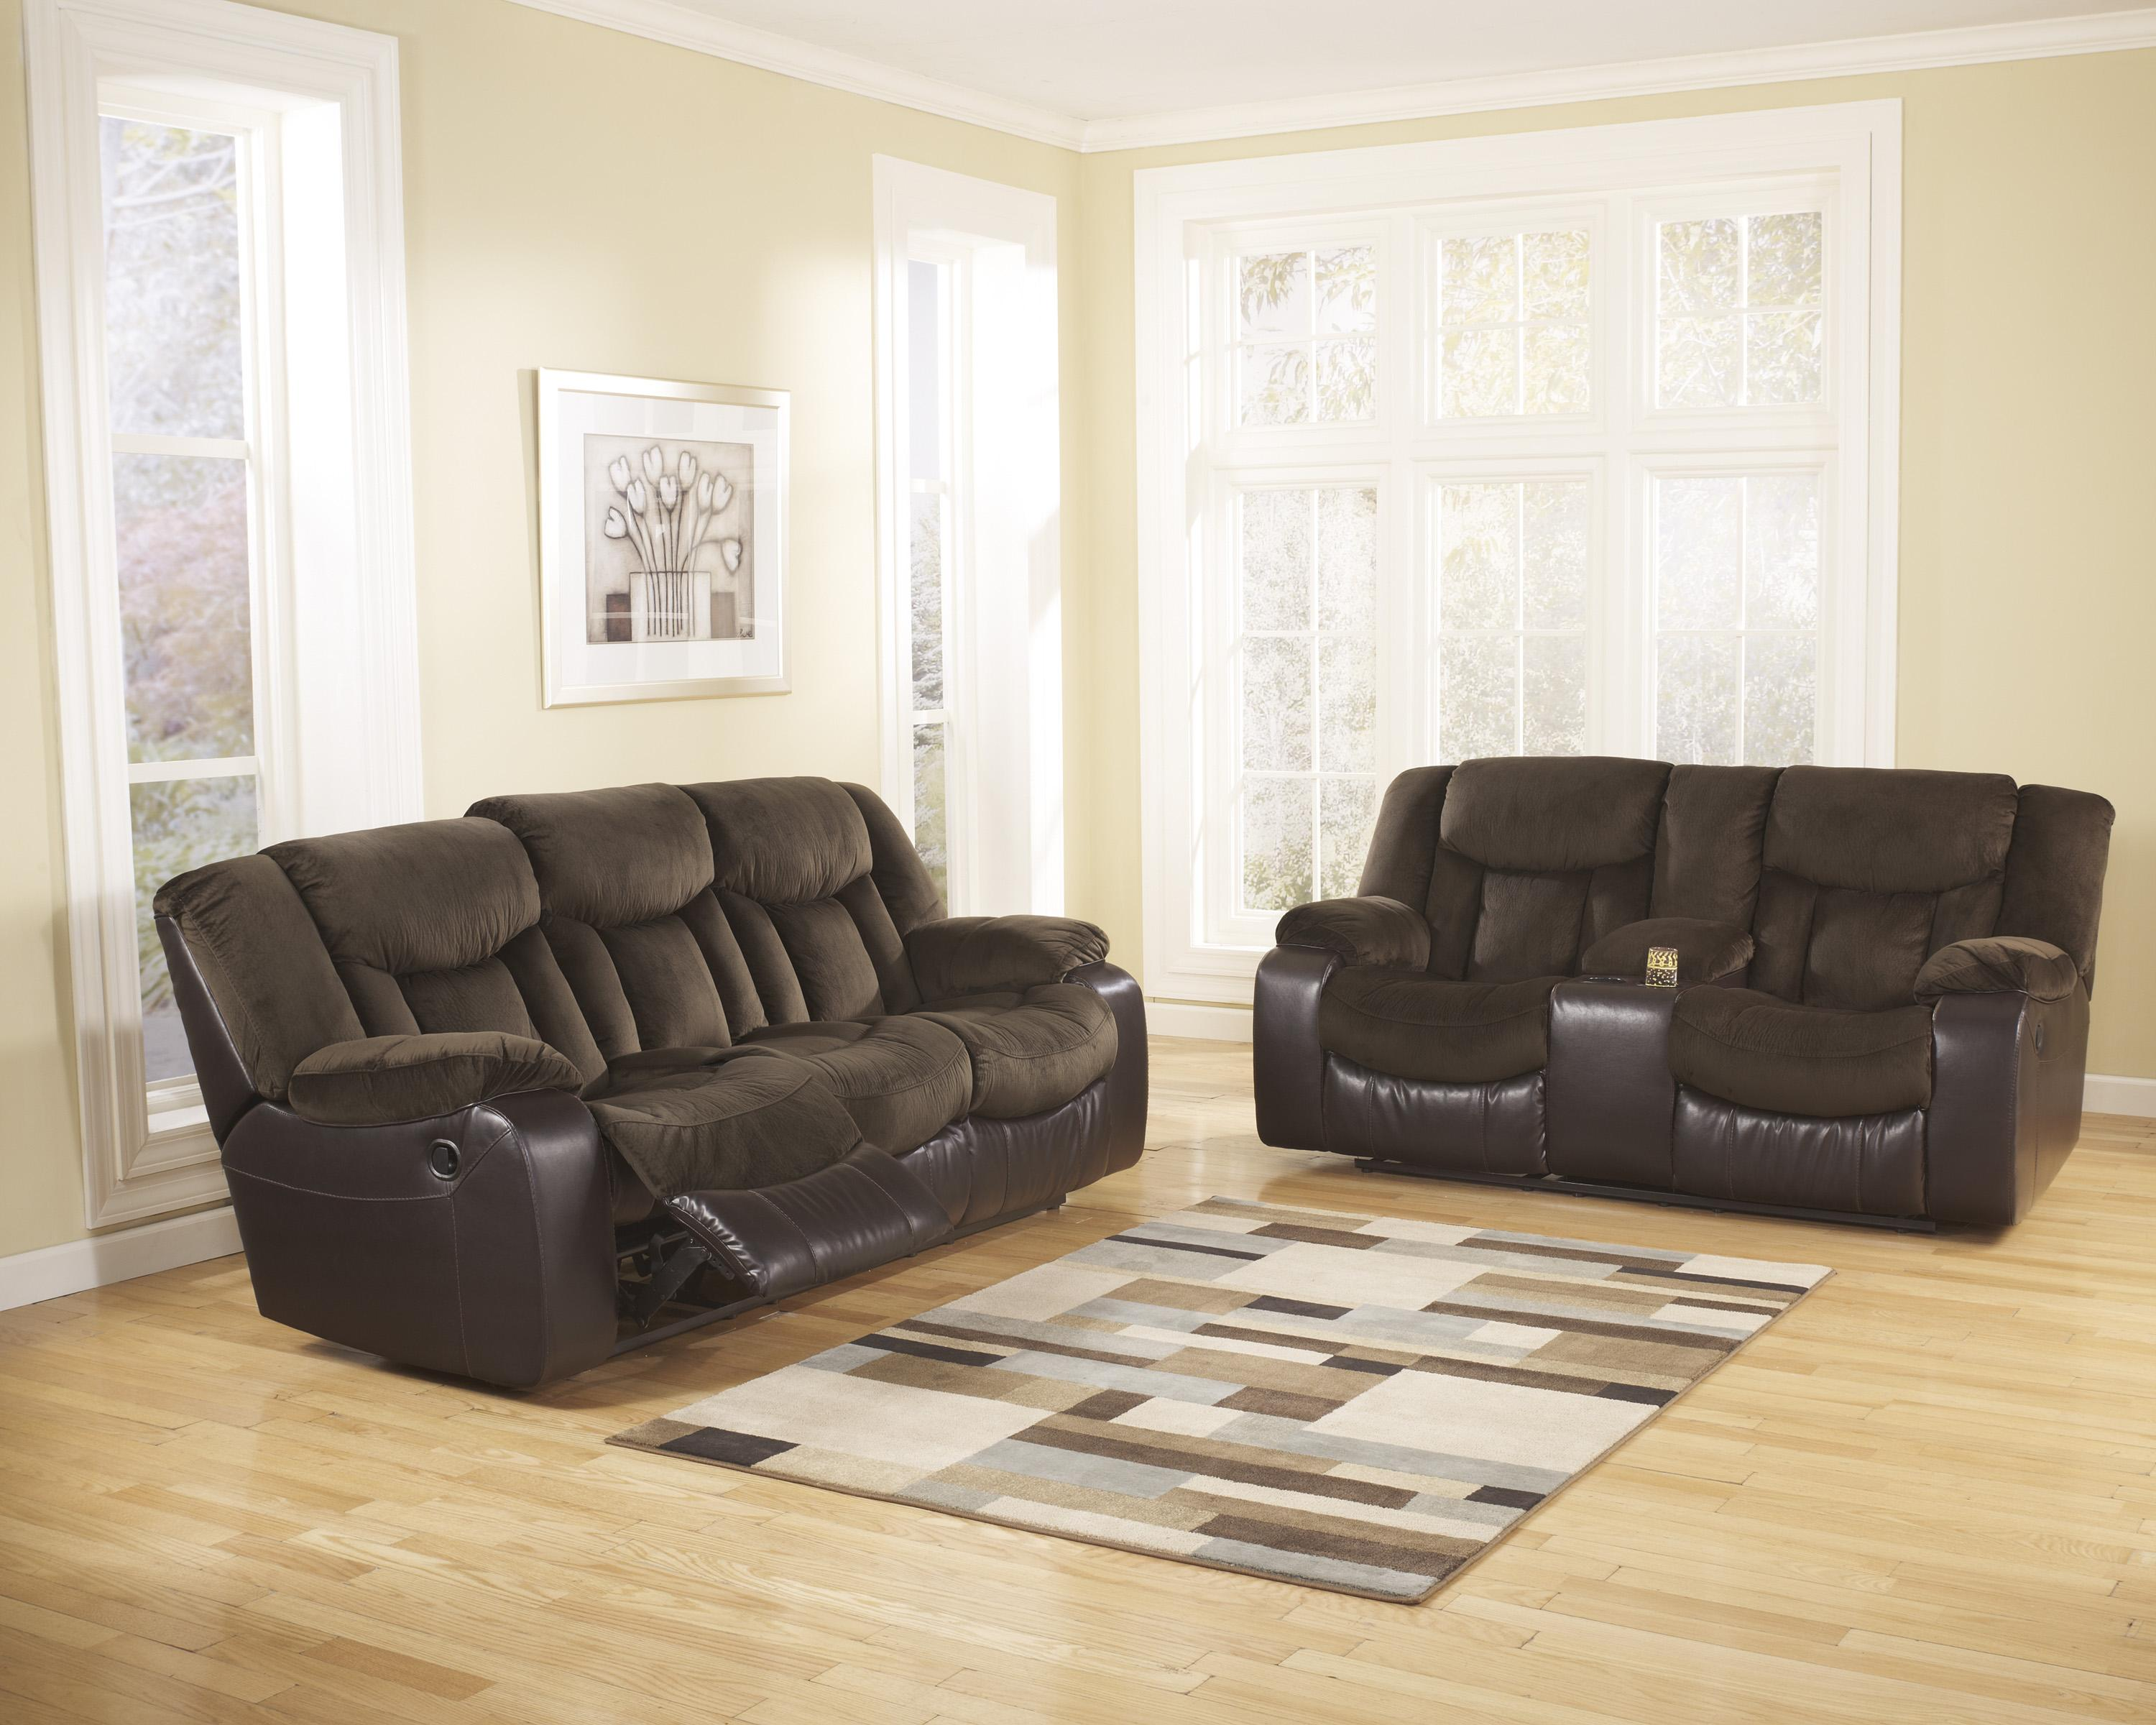 Signature Design by Ashley Tafton - Java Reclining Living Room Group - Item Number: 79202 Living Room Group 1